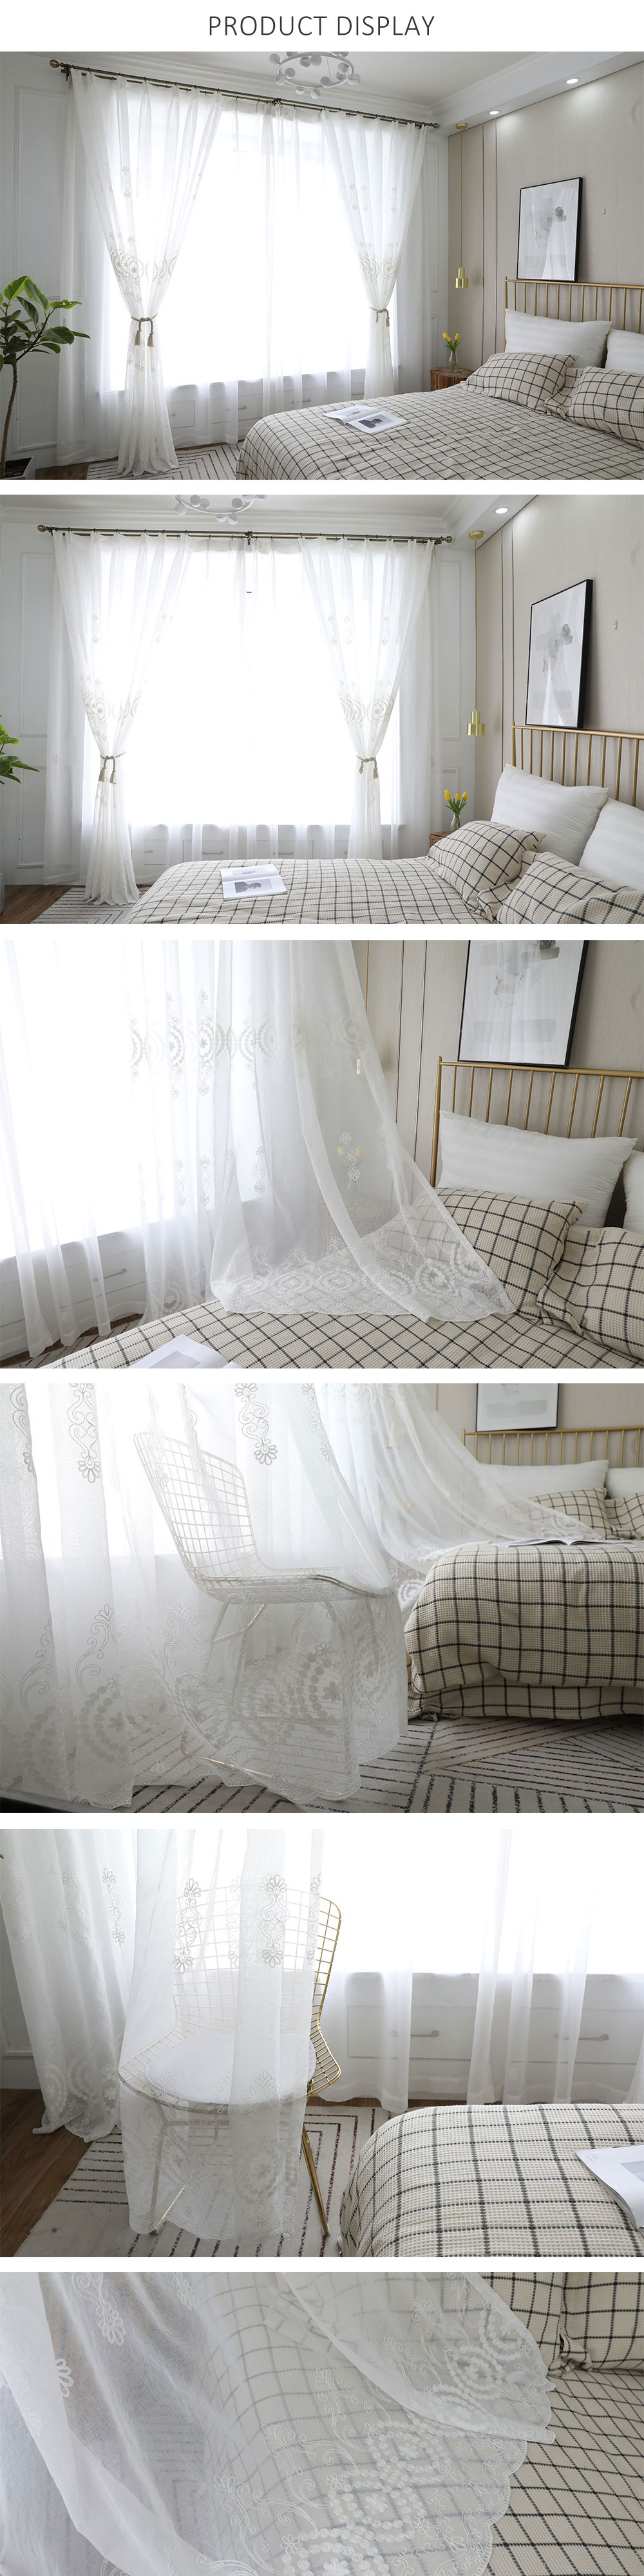 LOZUJOJU 1 Piece Tulle Sheer Curtains Embroidery White Drop All Match for Living room Window Thread Fabric Floral Jacquard Decor (1)